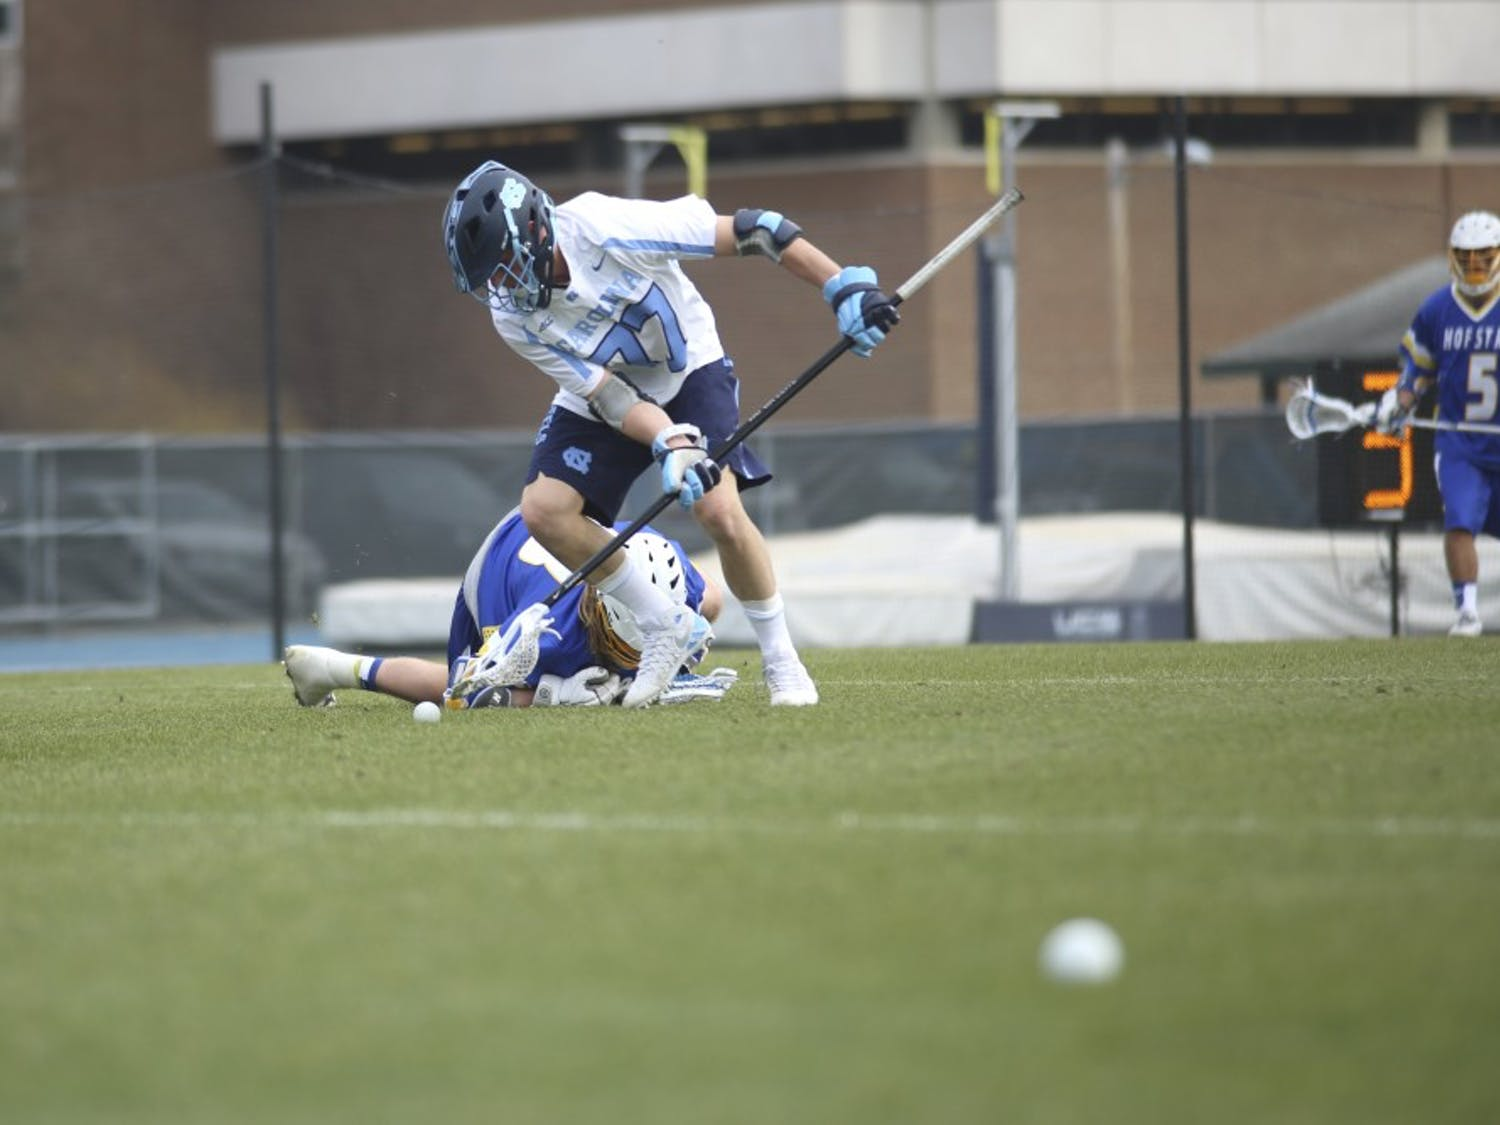 UNC defenseman Zach Powers (77) goes for the ball Saturday afternoon against Hofstra. The Tar Heels fell 10-5.